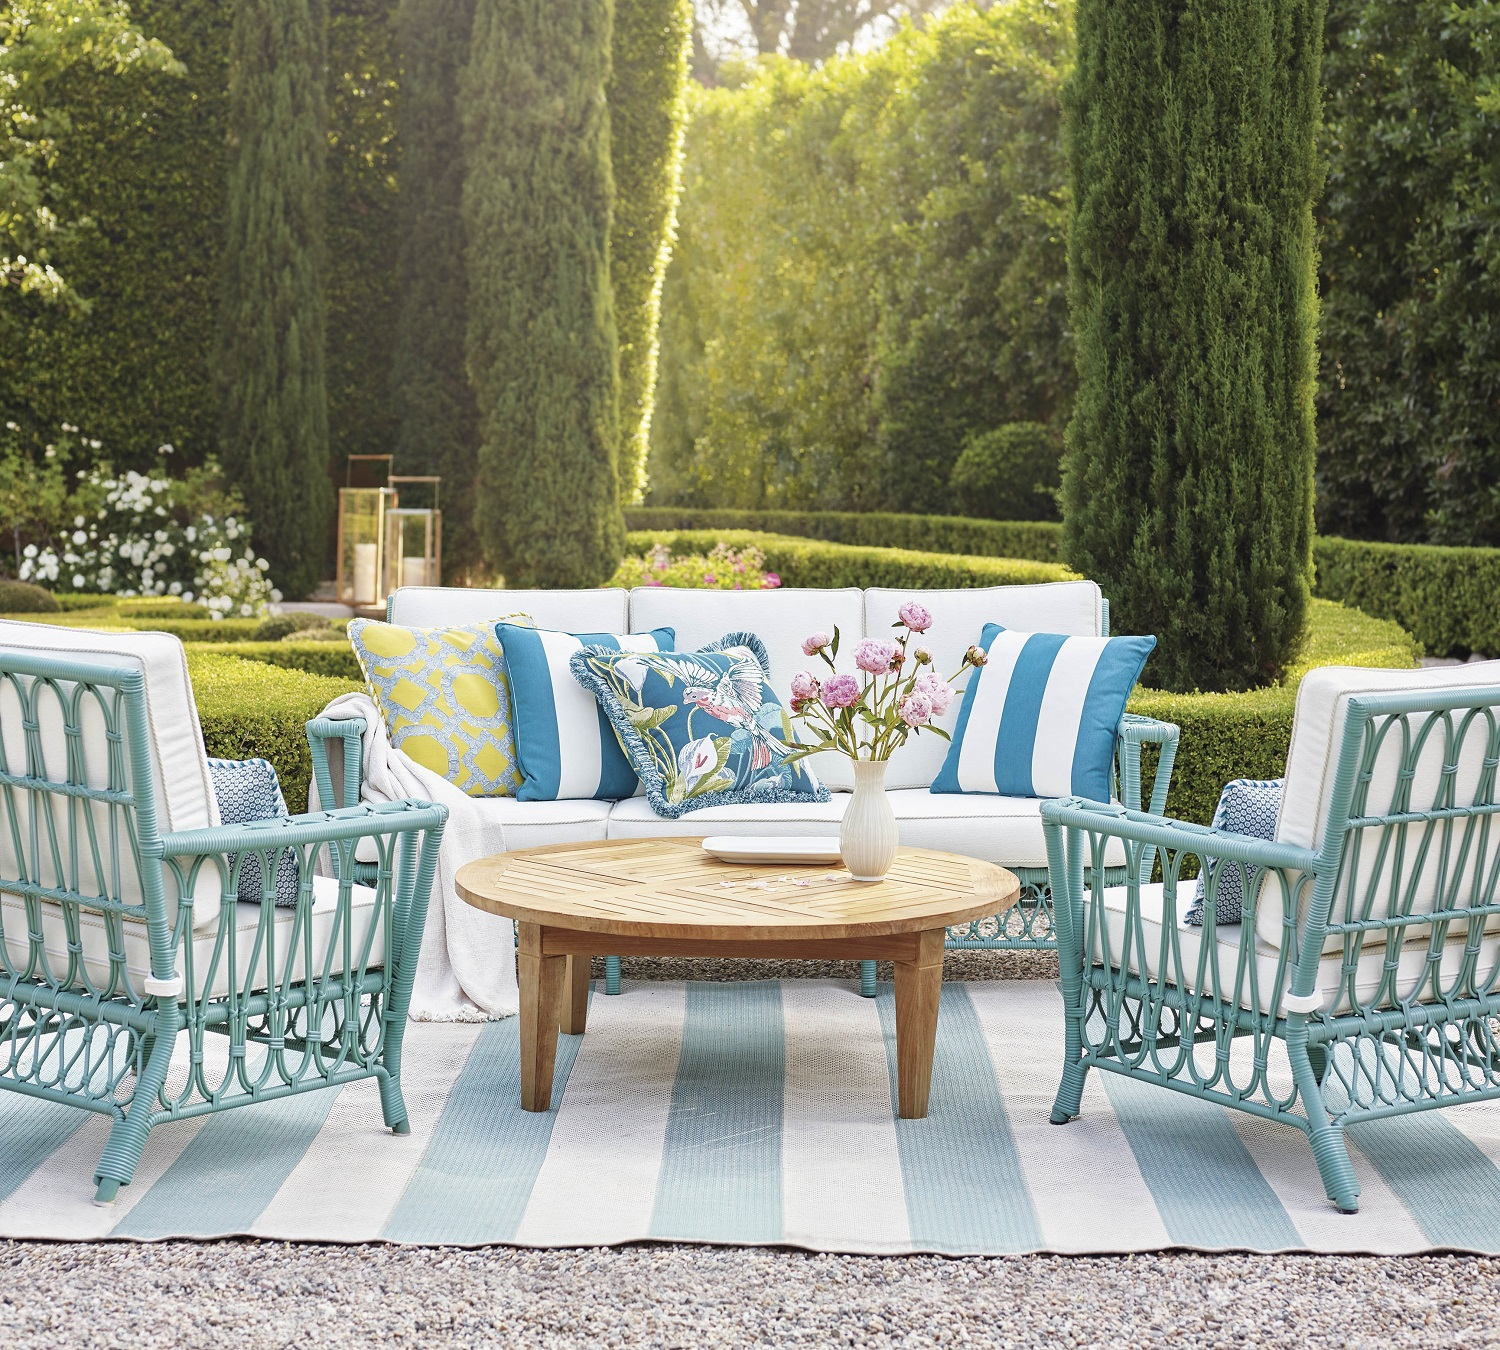 Frontgate's Myla collection brings a laid-back coastal vibe to any outdoor setting. All-weather resin wicker is intricately handwoven in an open looped pattern around durable powder coated aluminum frames. Add a rug to tie the area together. Photo: Frontgate